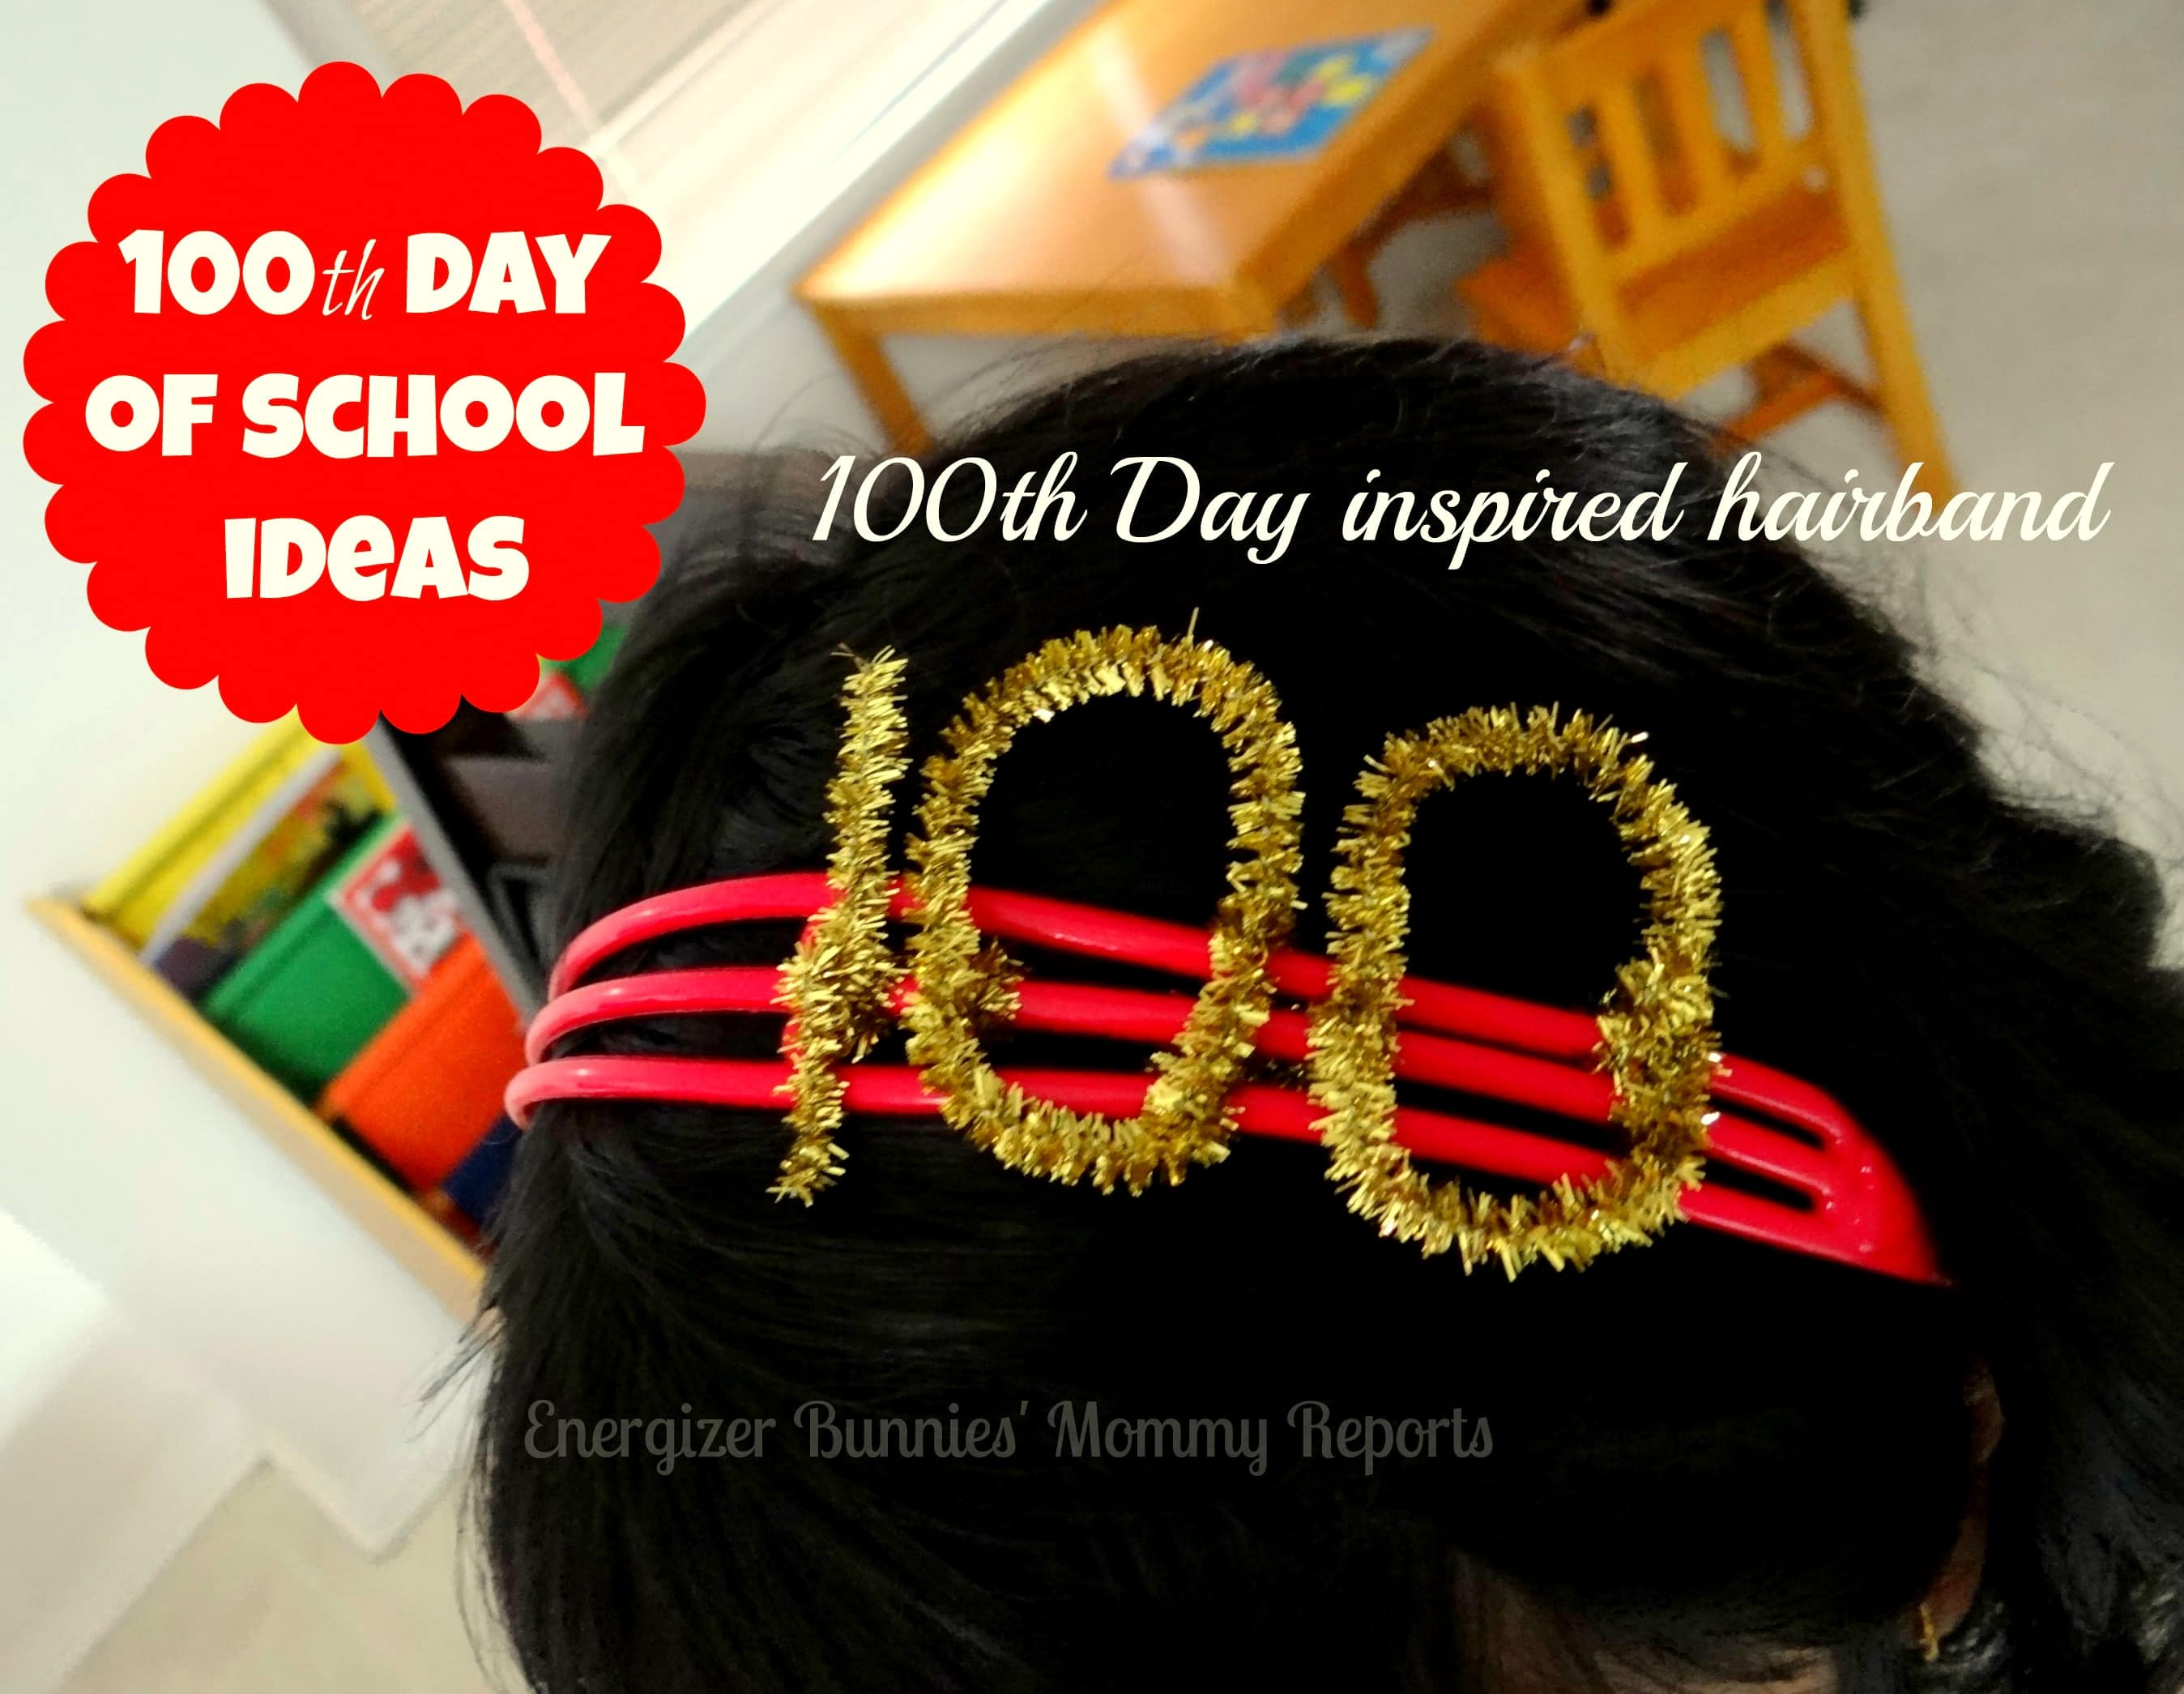 100th Day of School Ideas- Energizer Bunnies' Mommy Reports-Hairband